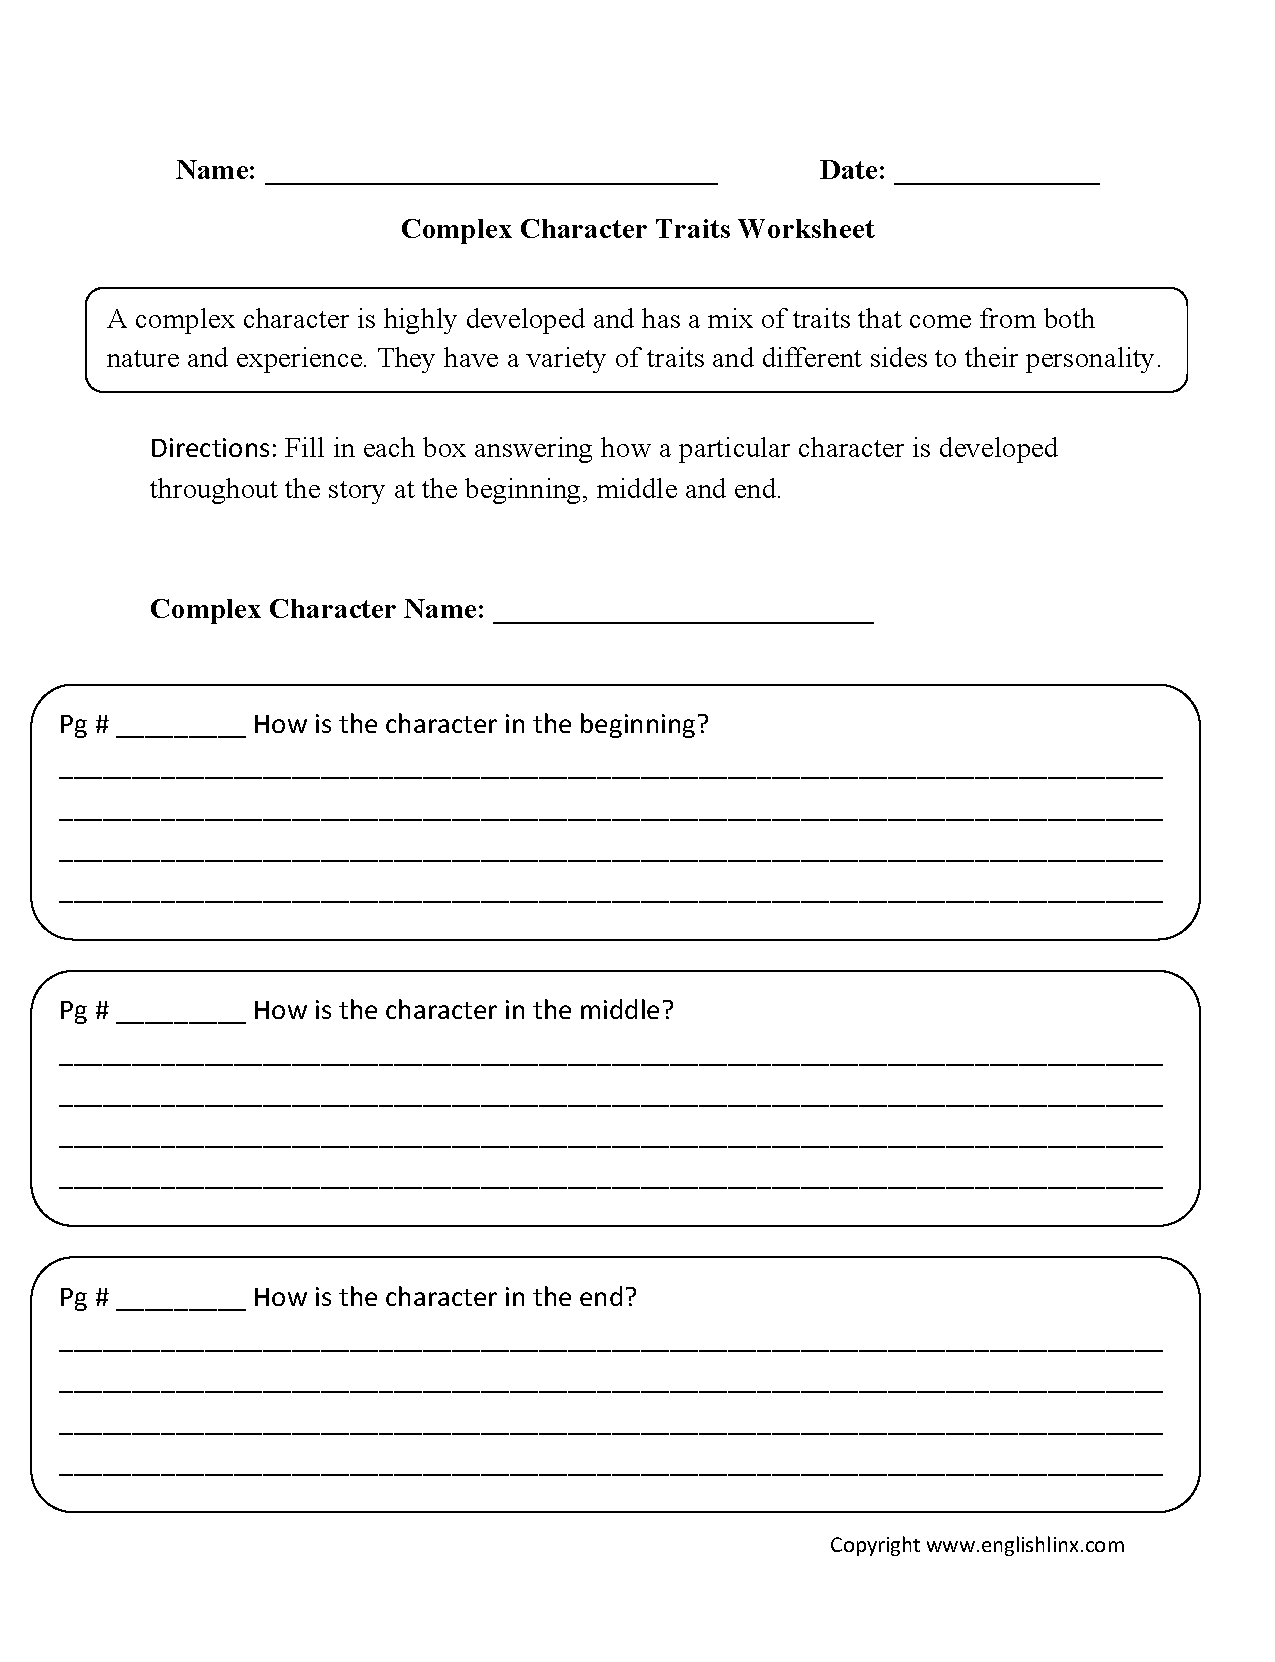 Free Worksheet Character Trait Worksheet reading worksheets character traits complex worksheets